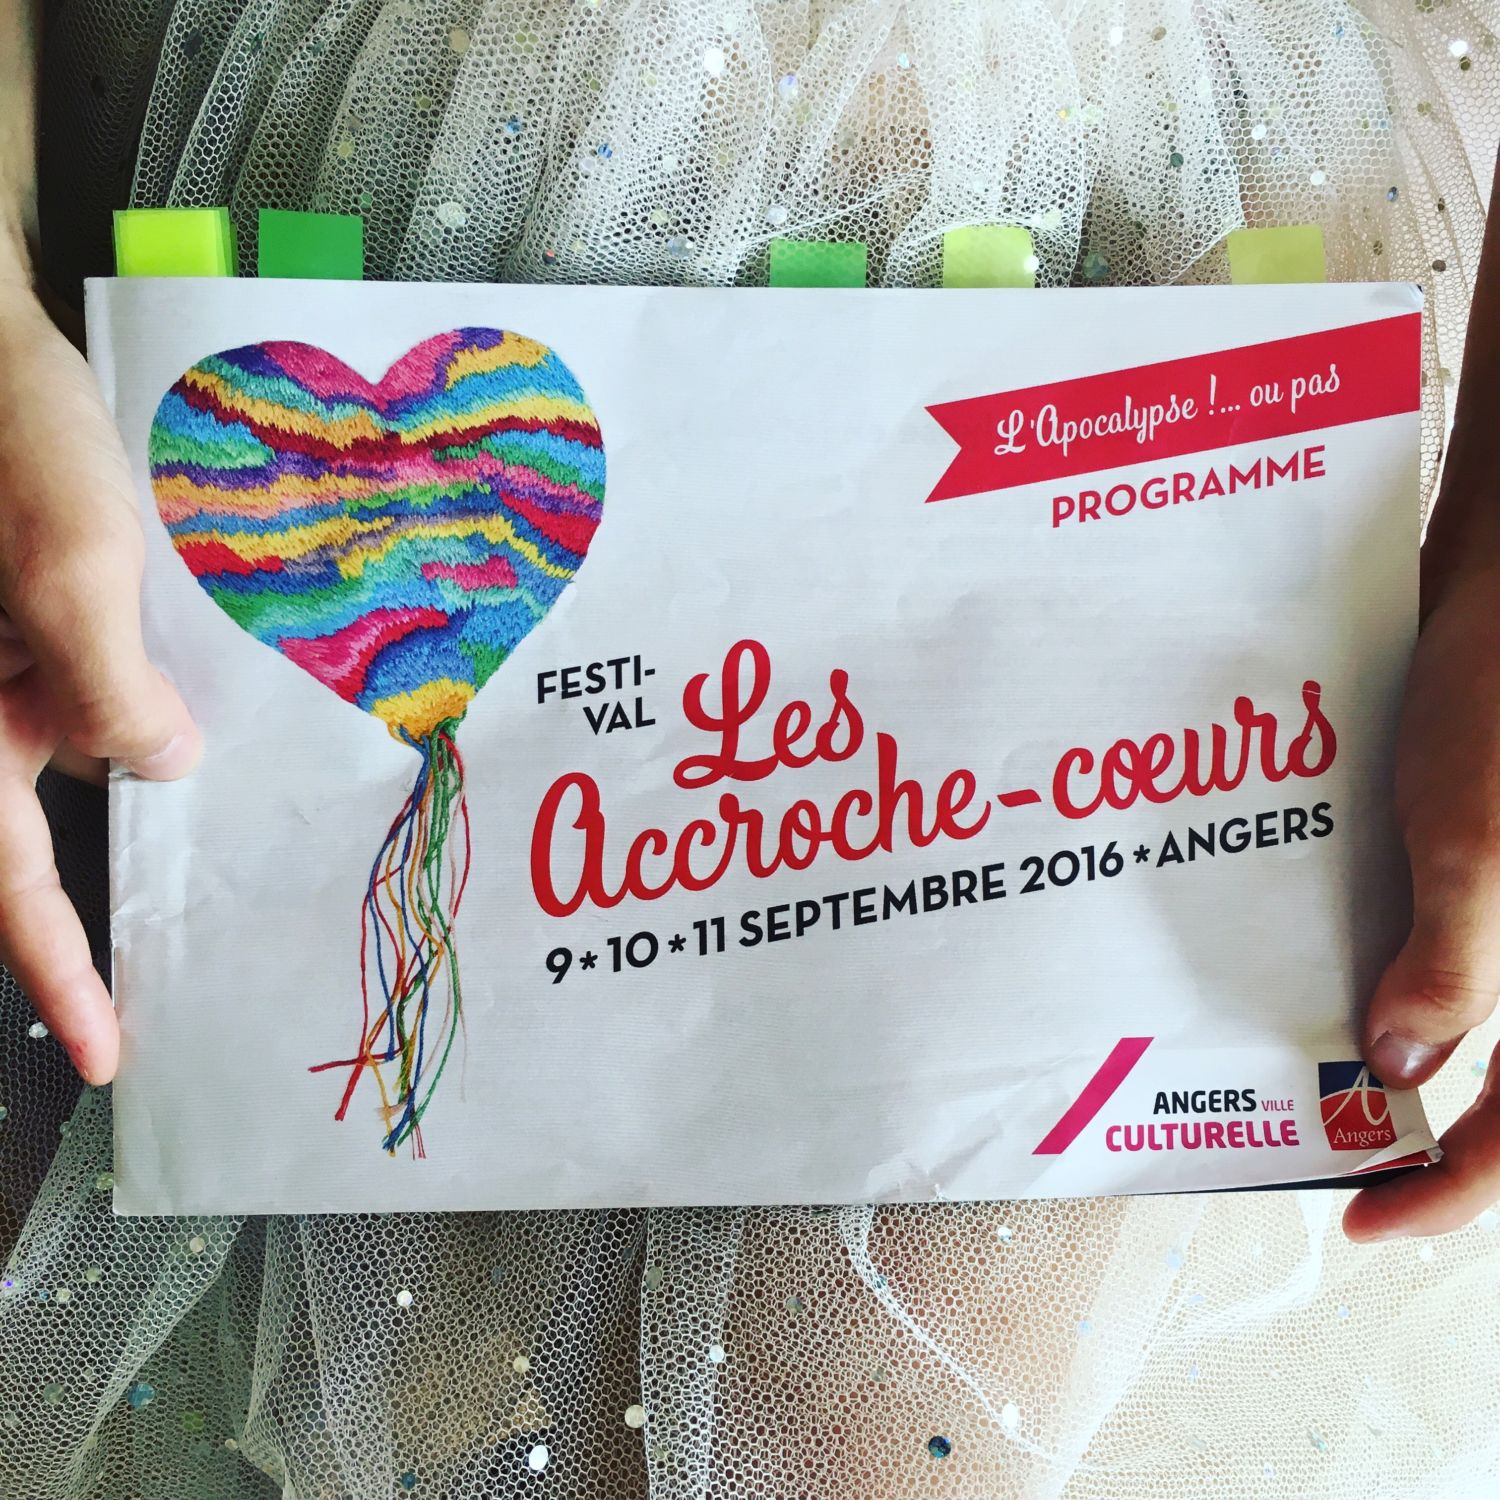 160906_accroche-coeurs_programme